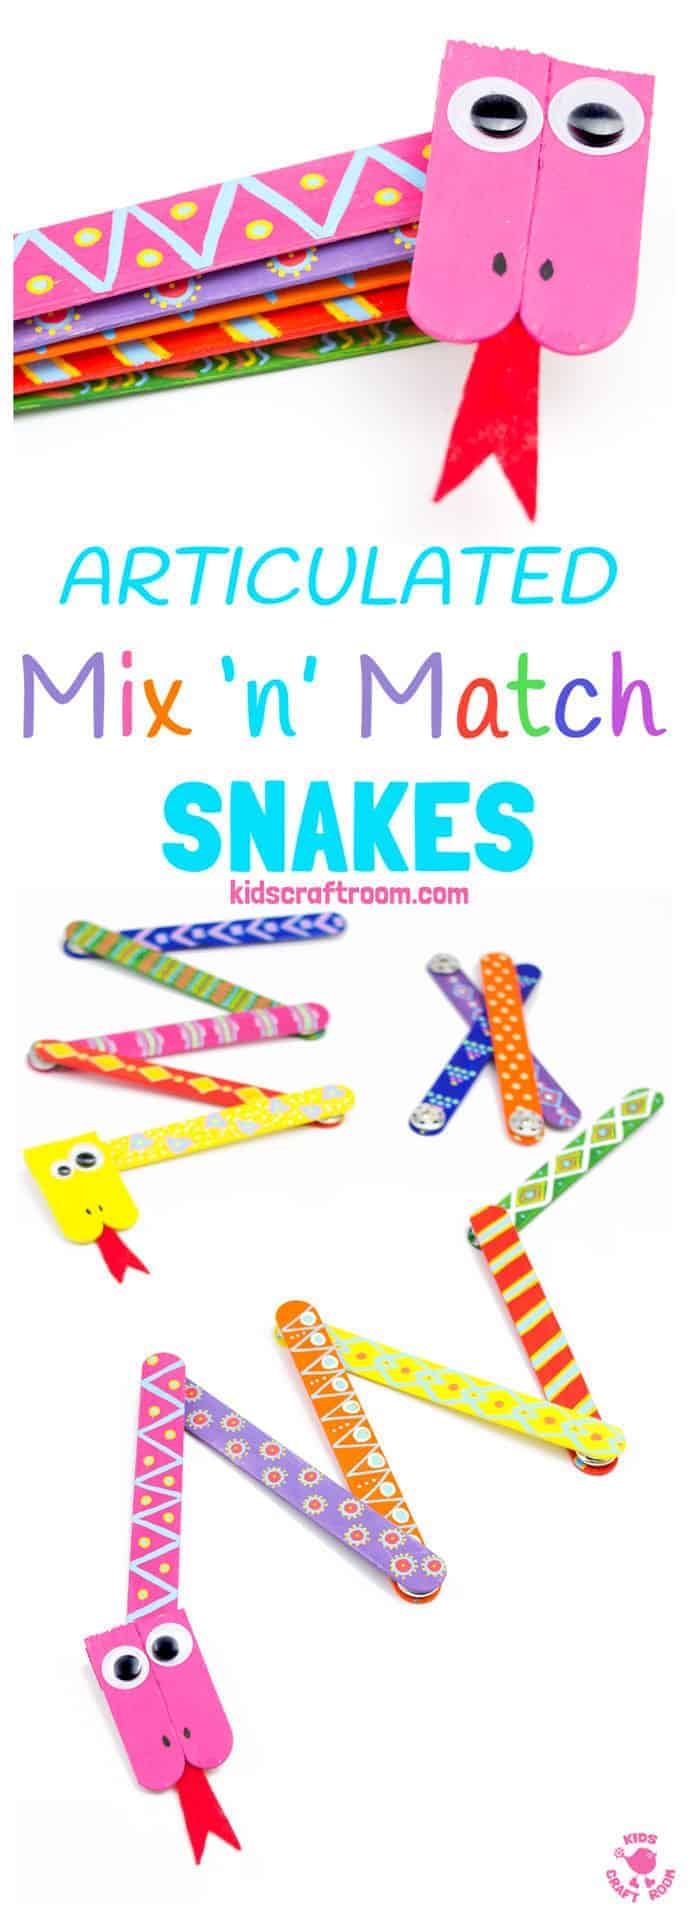 SNAKE CRAFT: This Mix 'N Match Articulated Snake Craft is such fun and twists, turns and slithers like a real one! With bright and colourful interchangeable body parts kids can make a unique snake toy every time they play! #snakecrafts #snakes #popsiclesticks #kidscrafts #kidscraft #kidcrafts #ECE #kidcraft #kidscrafts101 #craftideas #craftsforkids #funforkids #preschool #preK #earlyyears #letsgetcrafty #kidscreate #creativekids #craftykids #kidsactivities #activitiesforkids